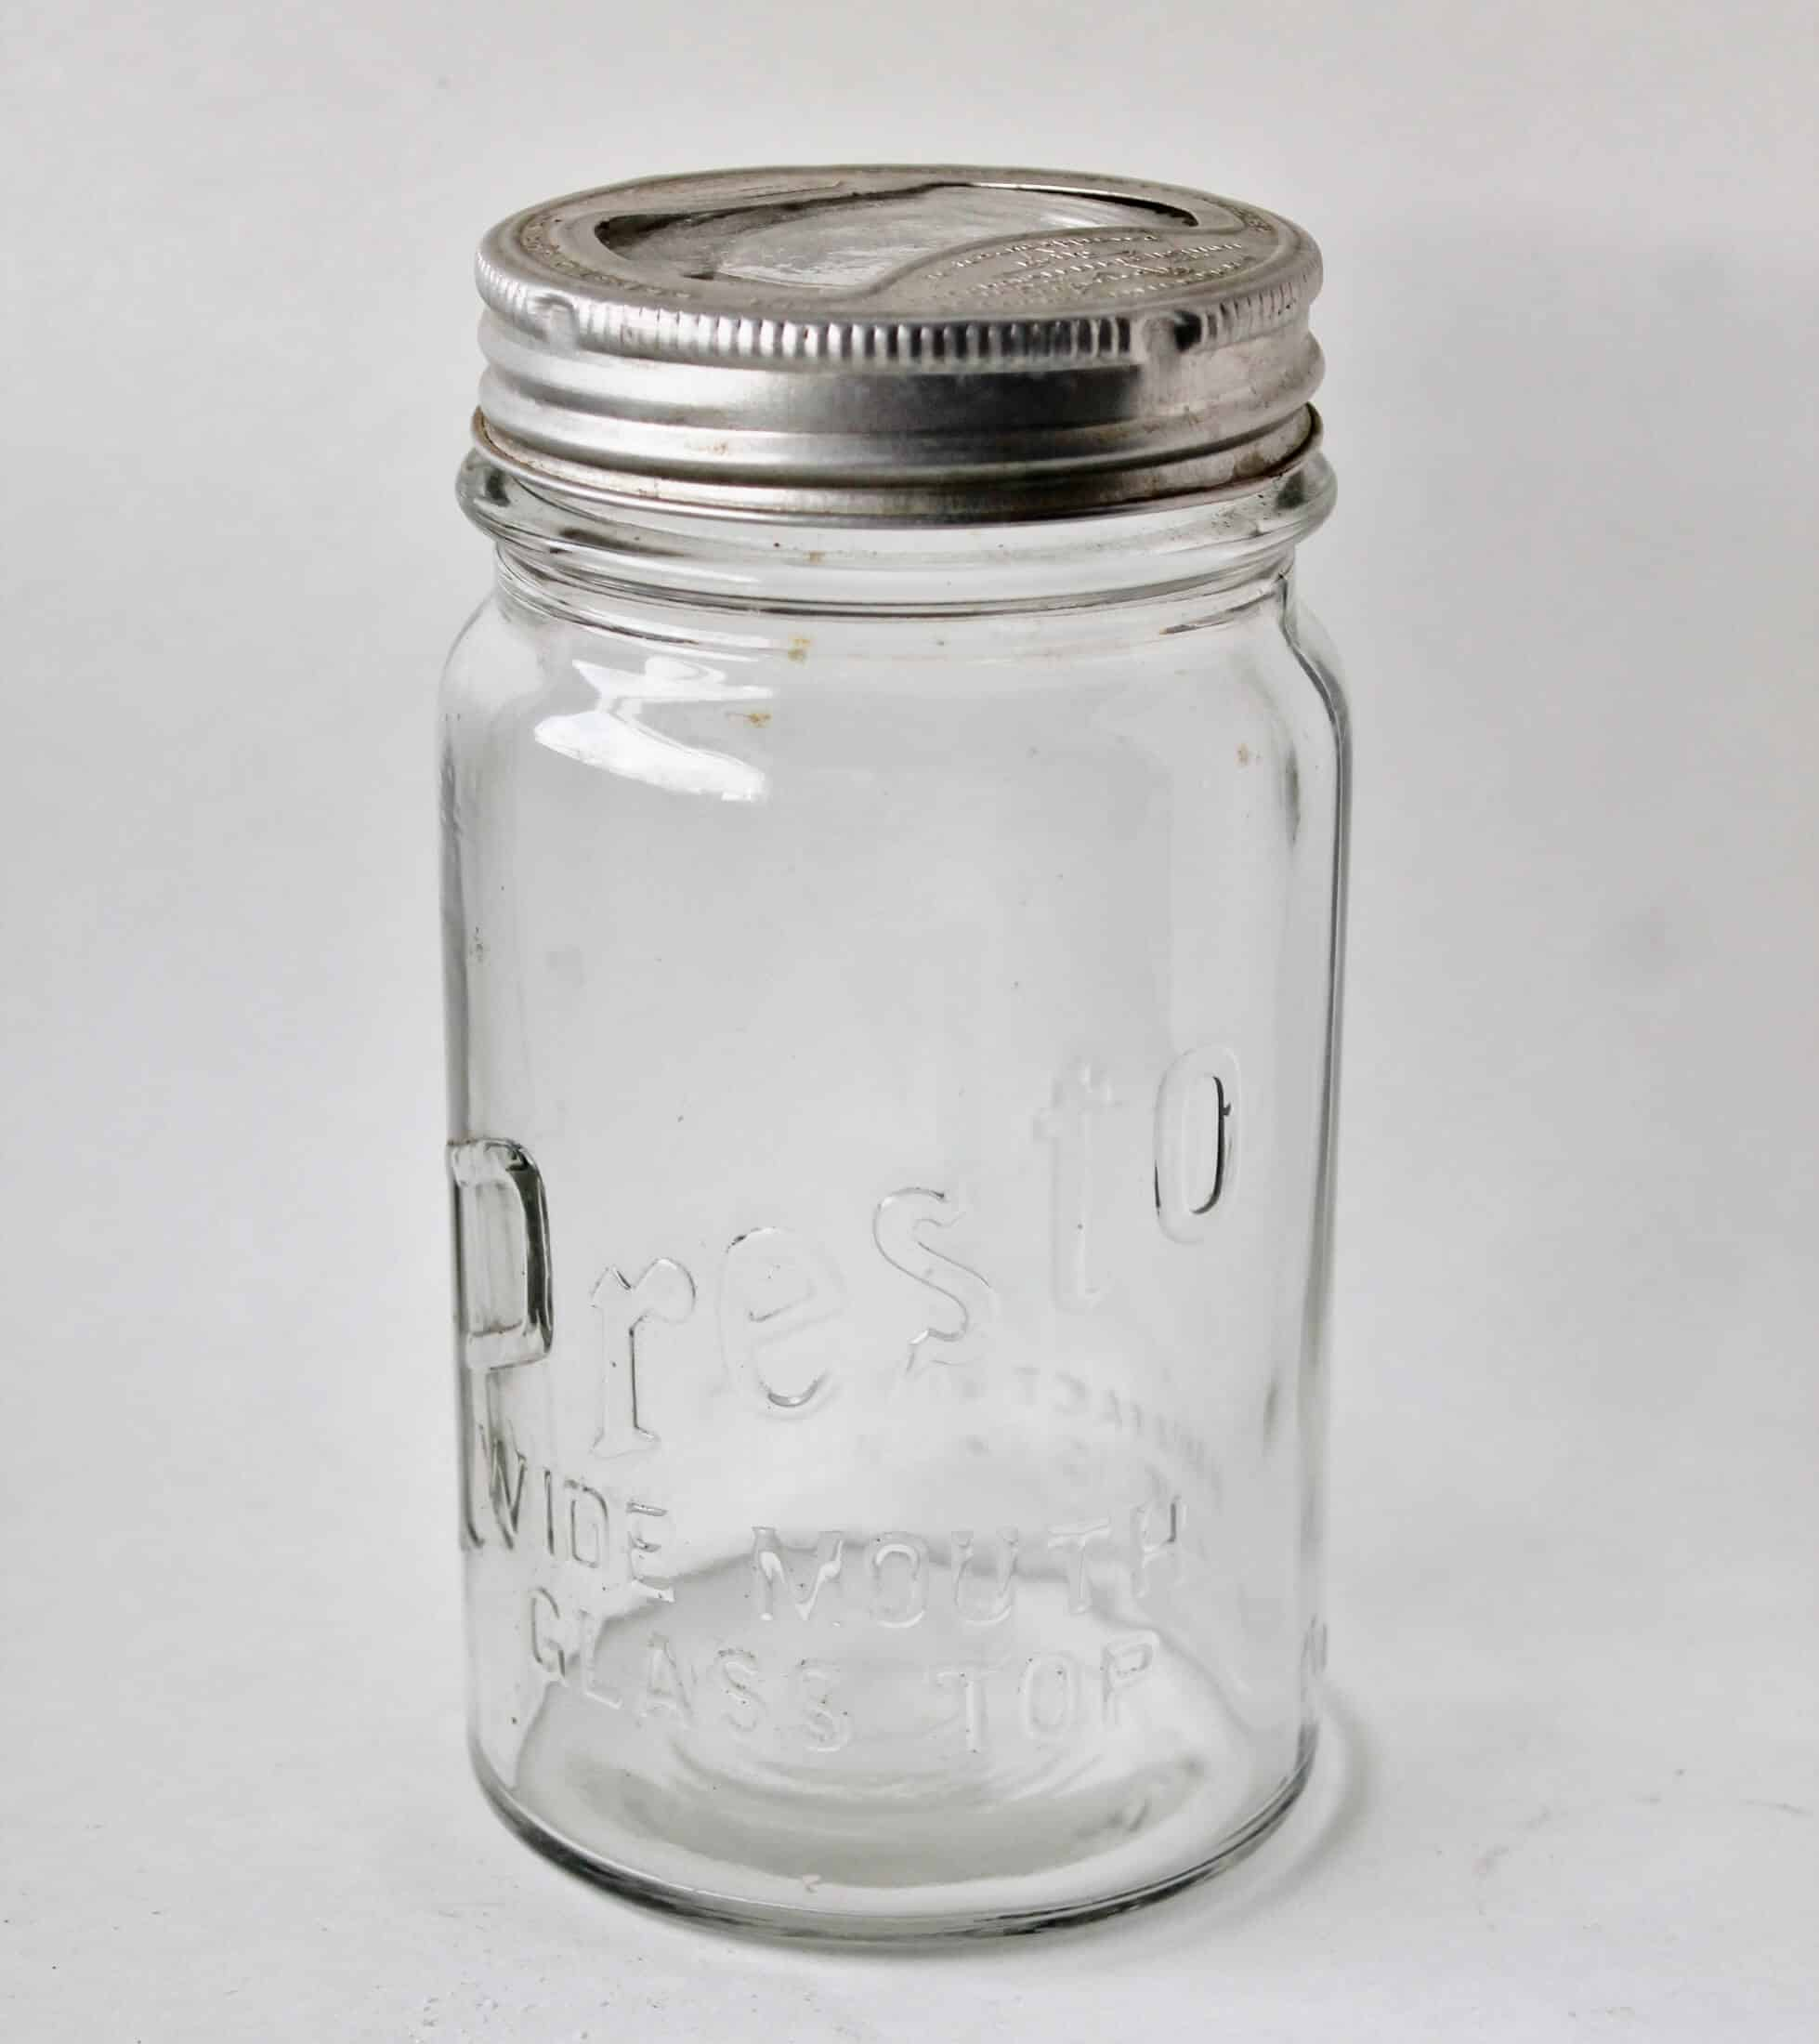 Clear glass Presto canning jar